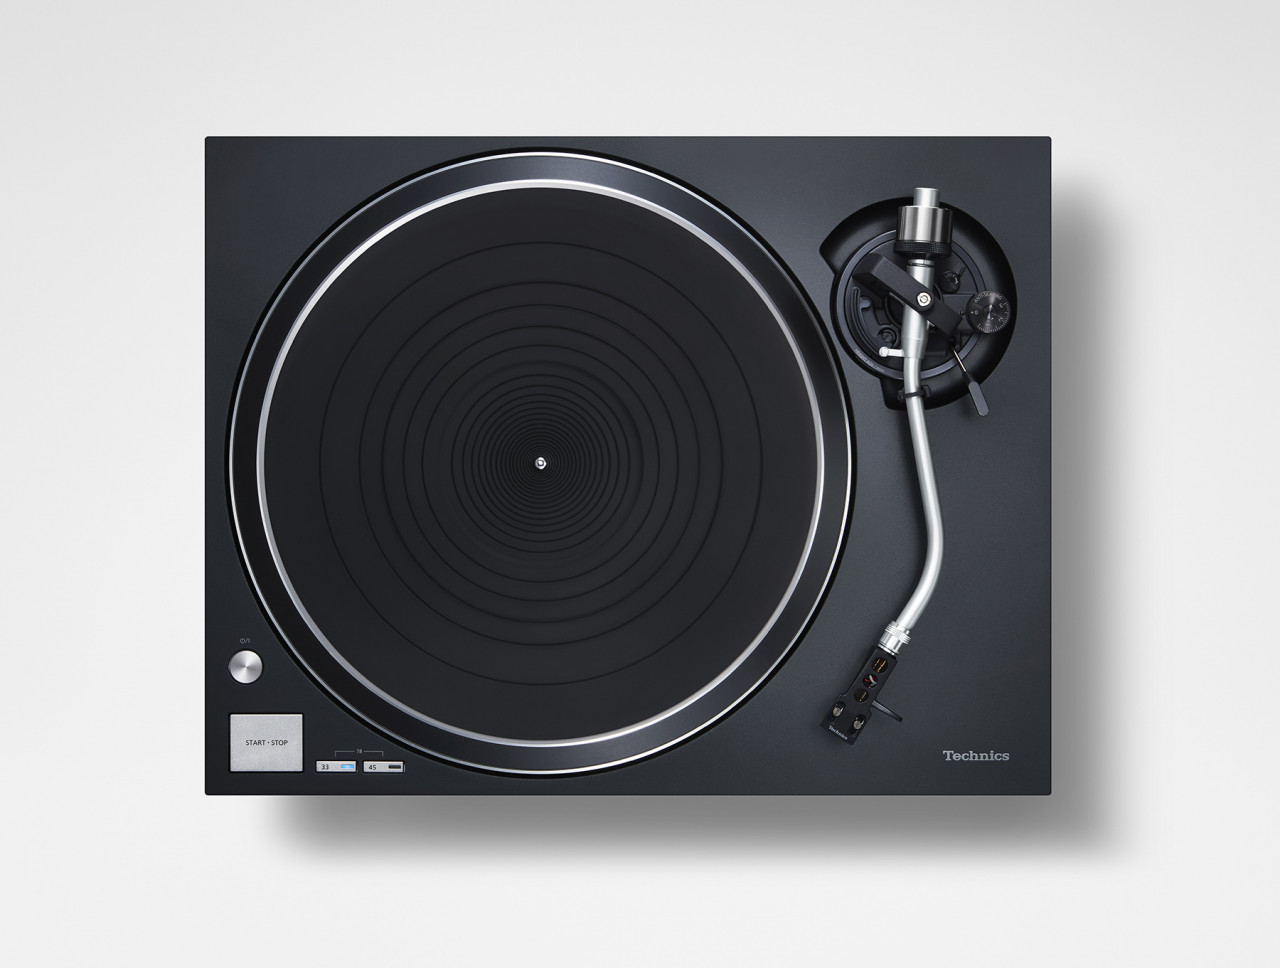 Technics New Entry Level SL-100C Turntable Keeps Things Simple